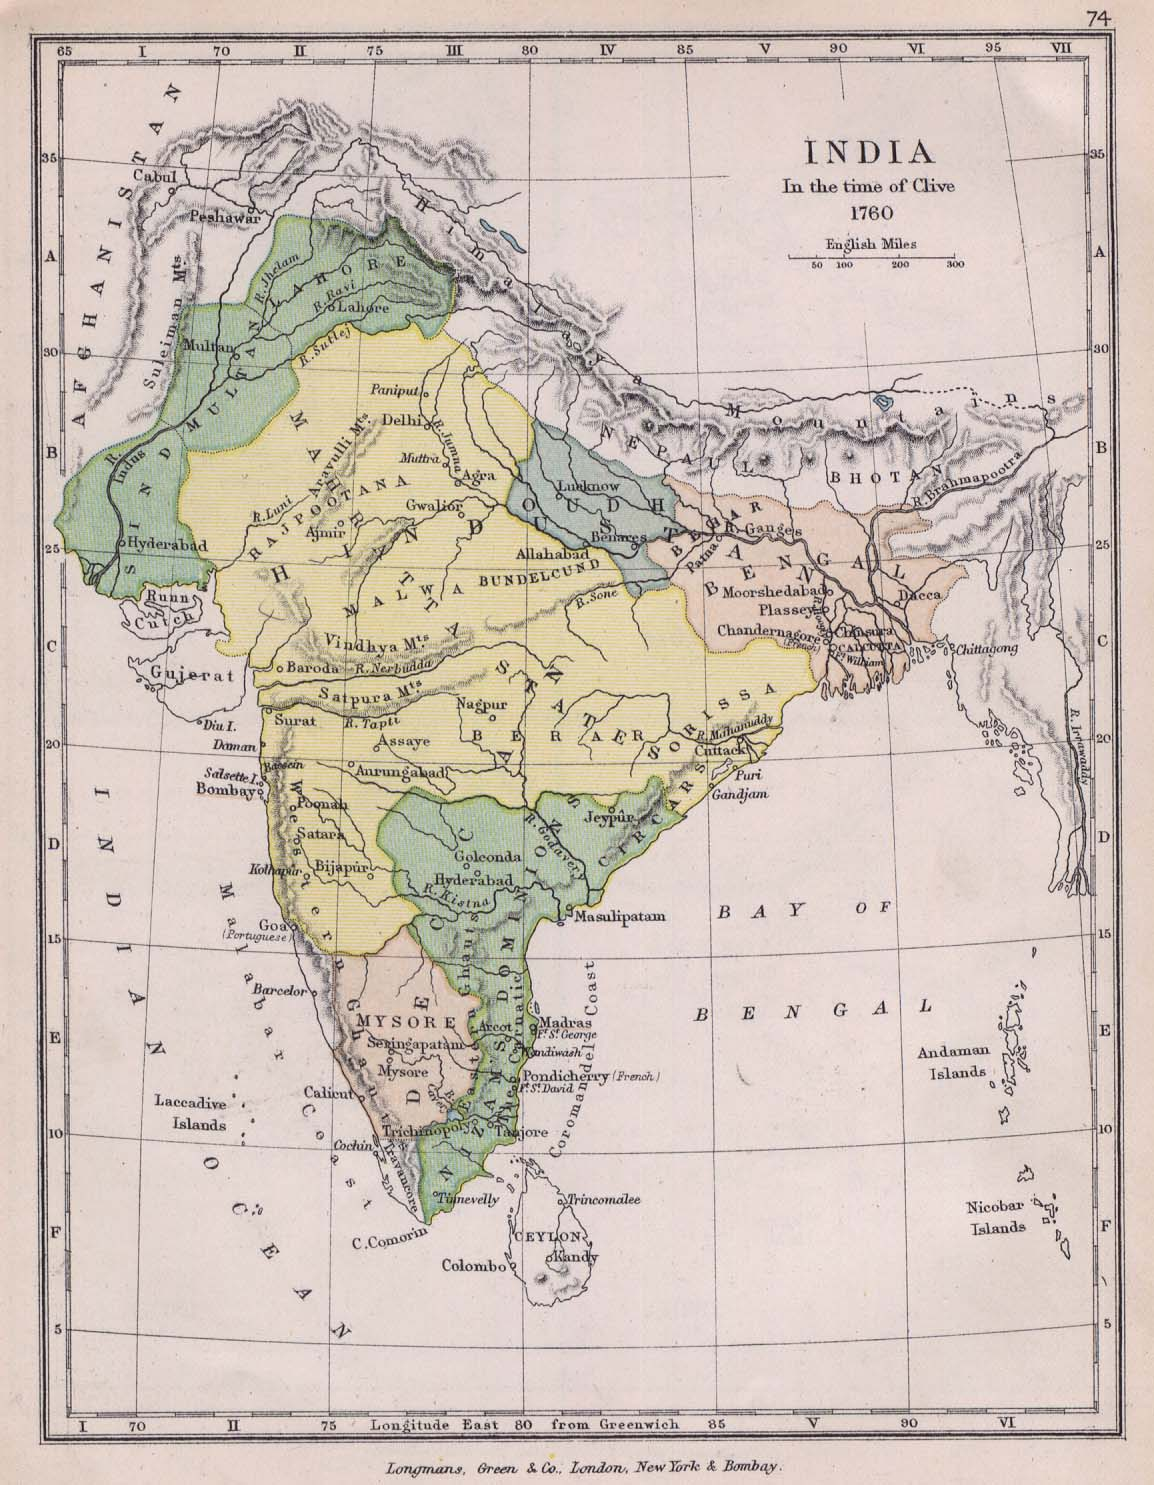 The Hindu reconquista of India